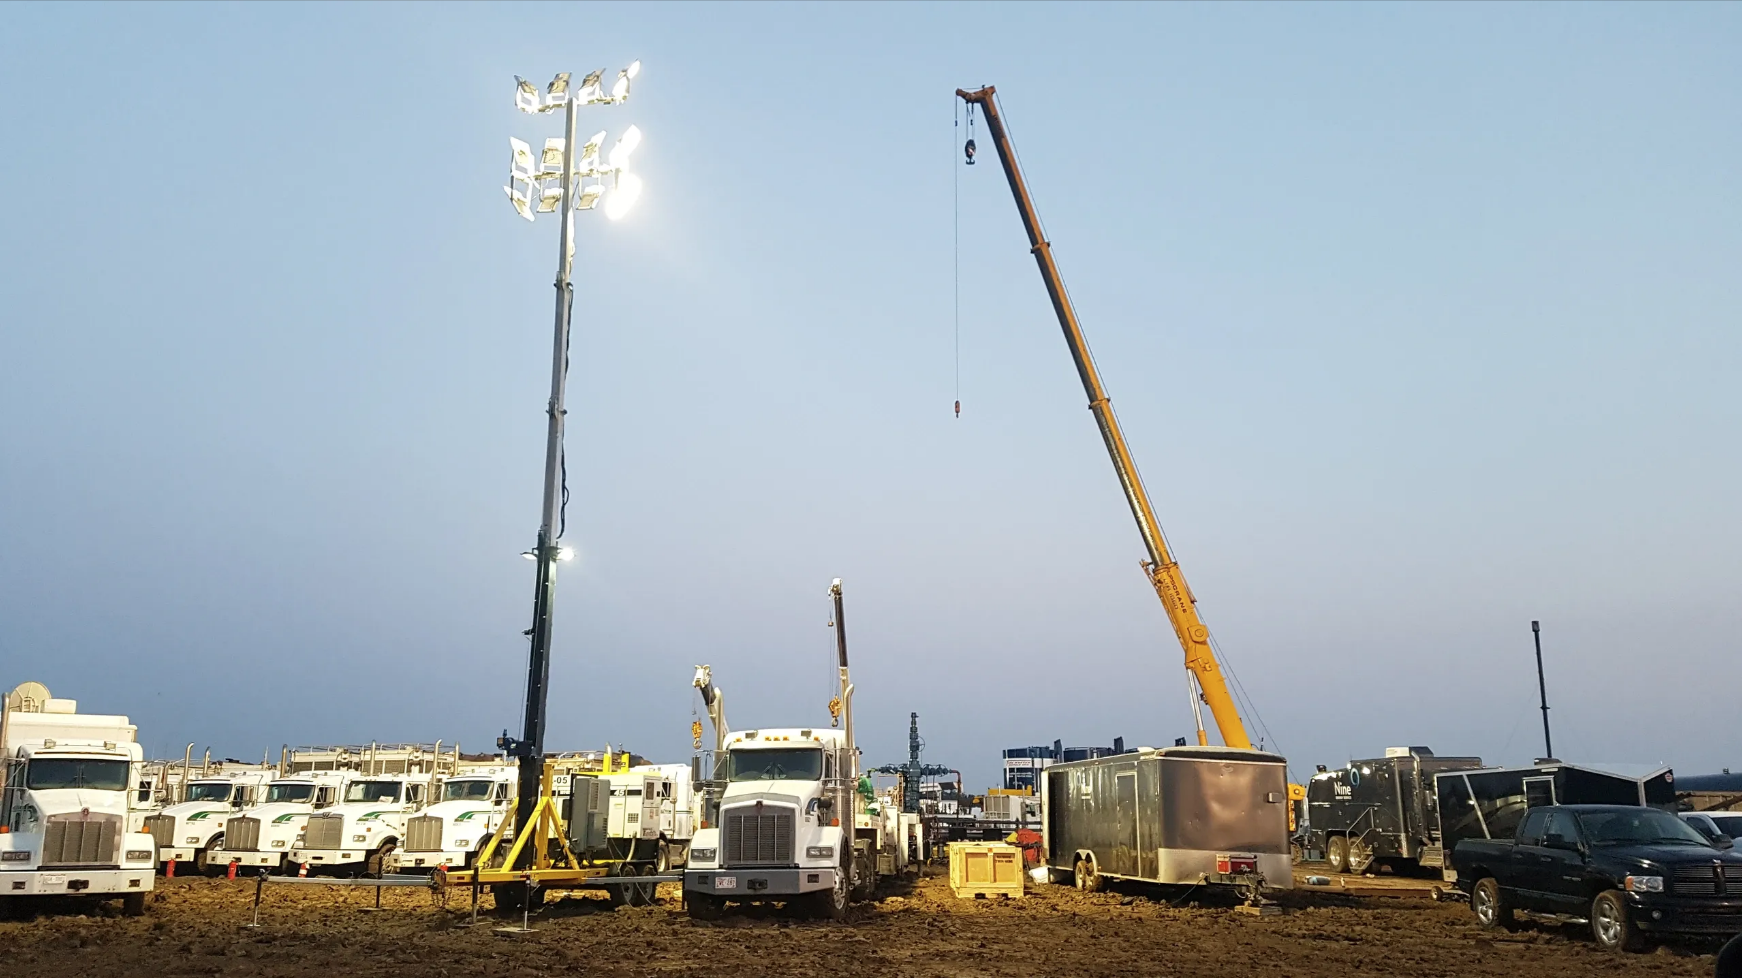 Light tower, crane and several hauling trucks on a worksite